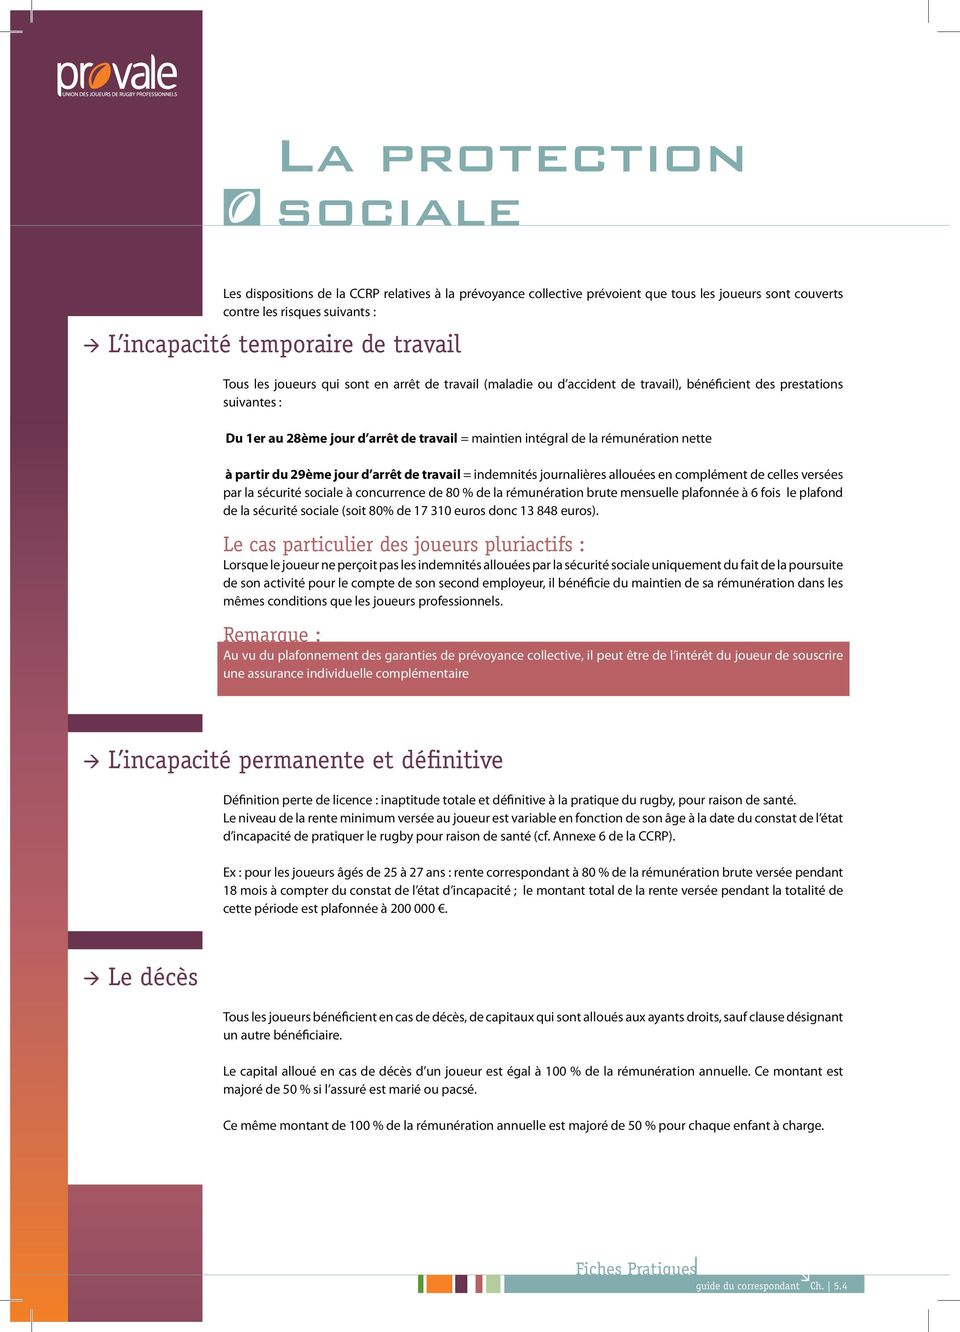 Bureau securit sociale difficult s financi res la lmde - Plafond remboursement securite sociale ...